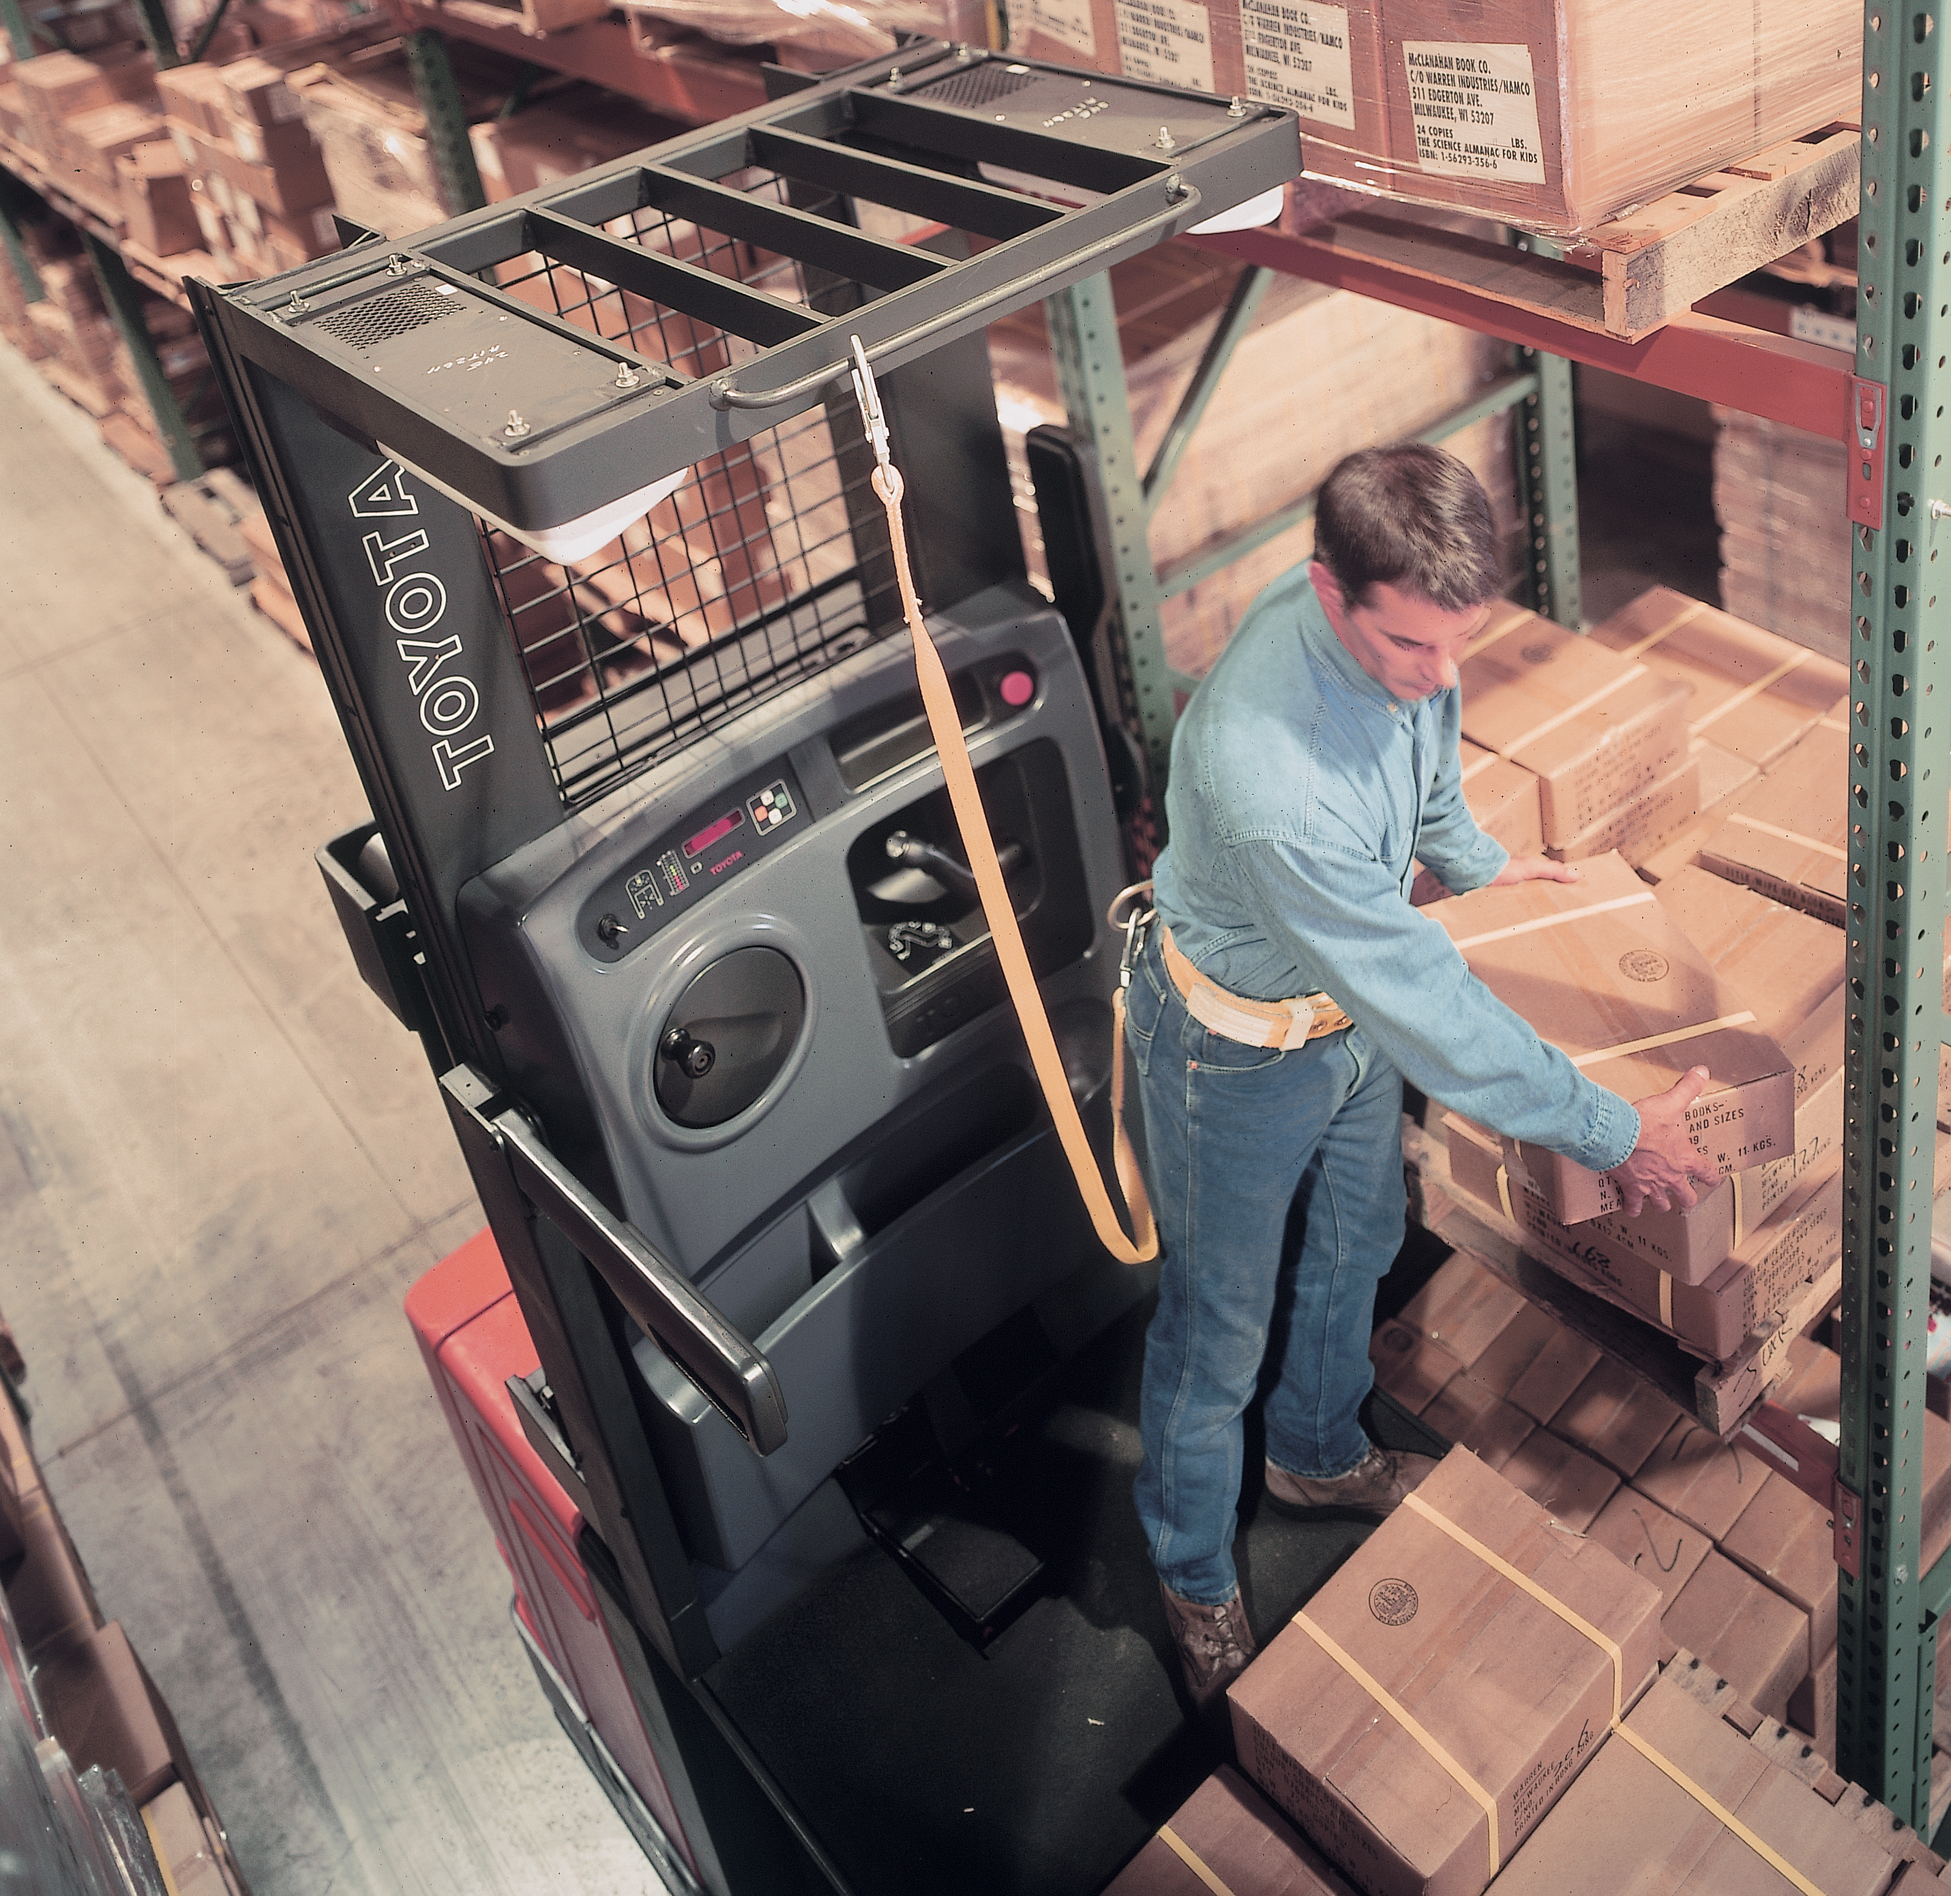 Toyota's 7-Series Order Picker forklift in action